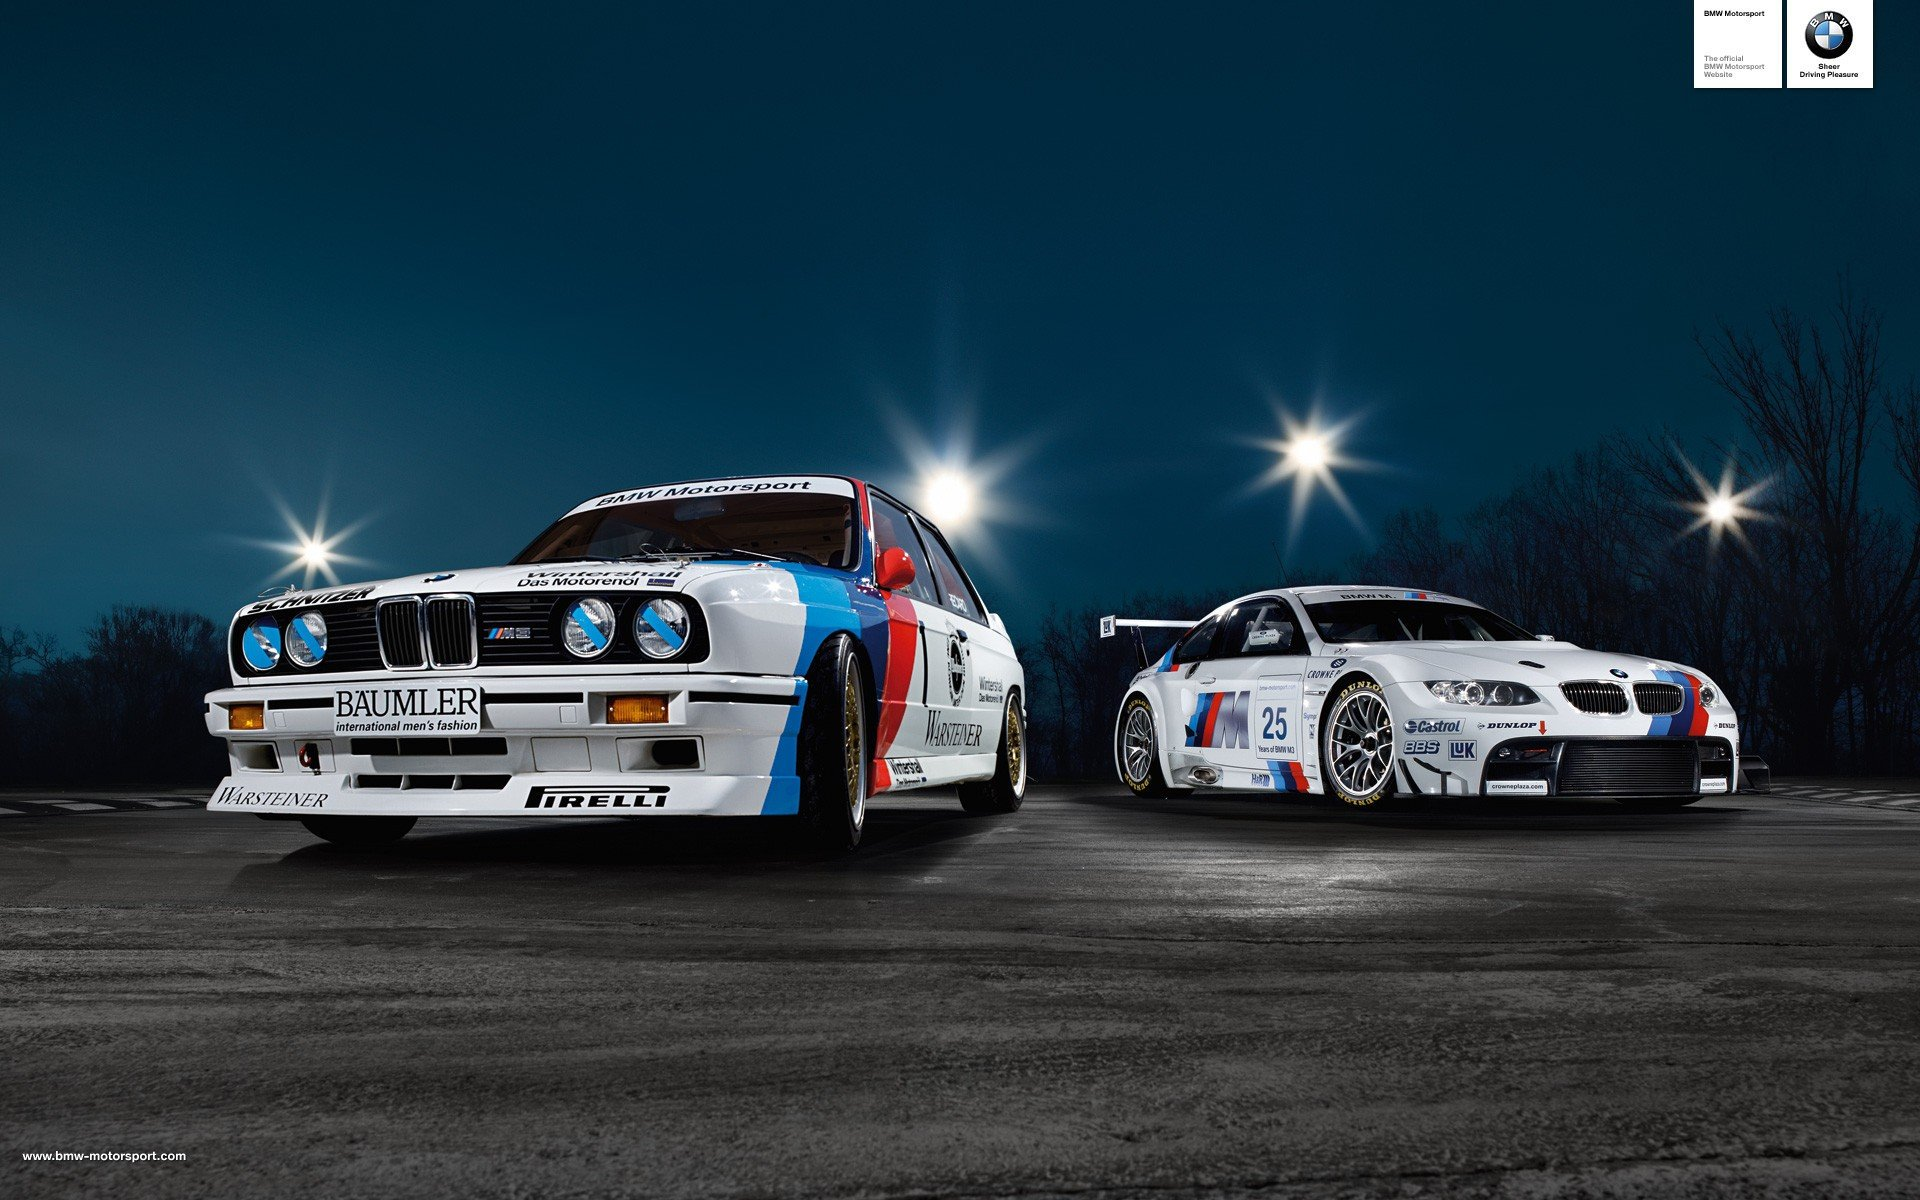 BMW cars oldschool BMW M3 DTM racing cars wallpaper | 1920x1200 ...